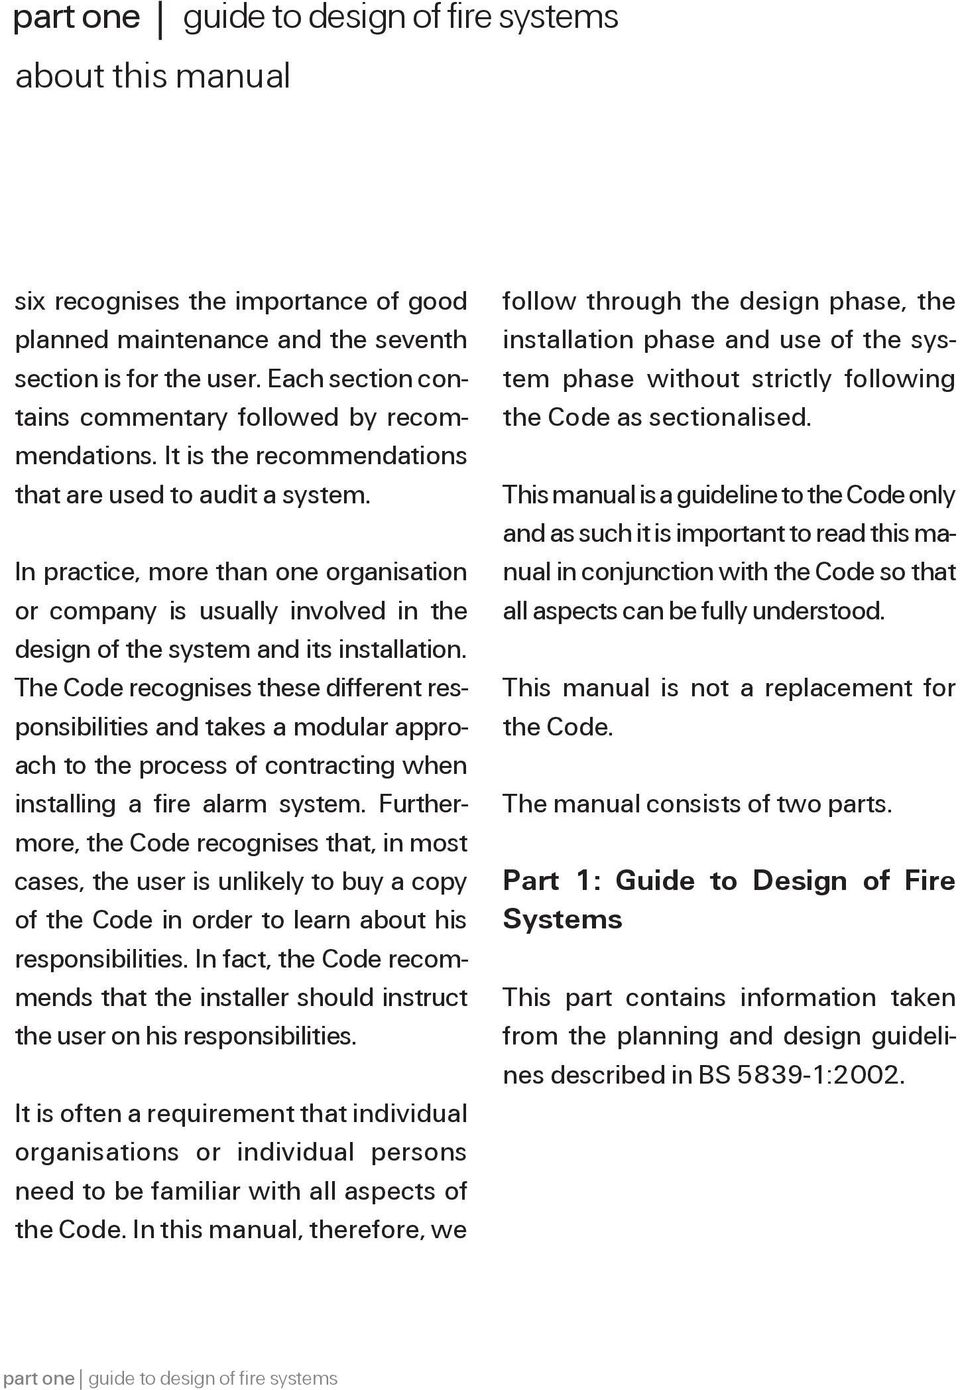 The Code recognises these different responsibilities and takes a modular approach to the process of contracting when installing a fire alarm system.